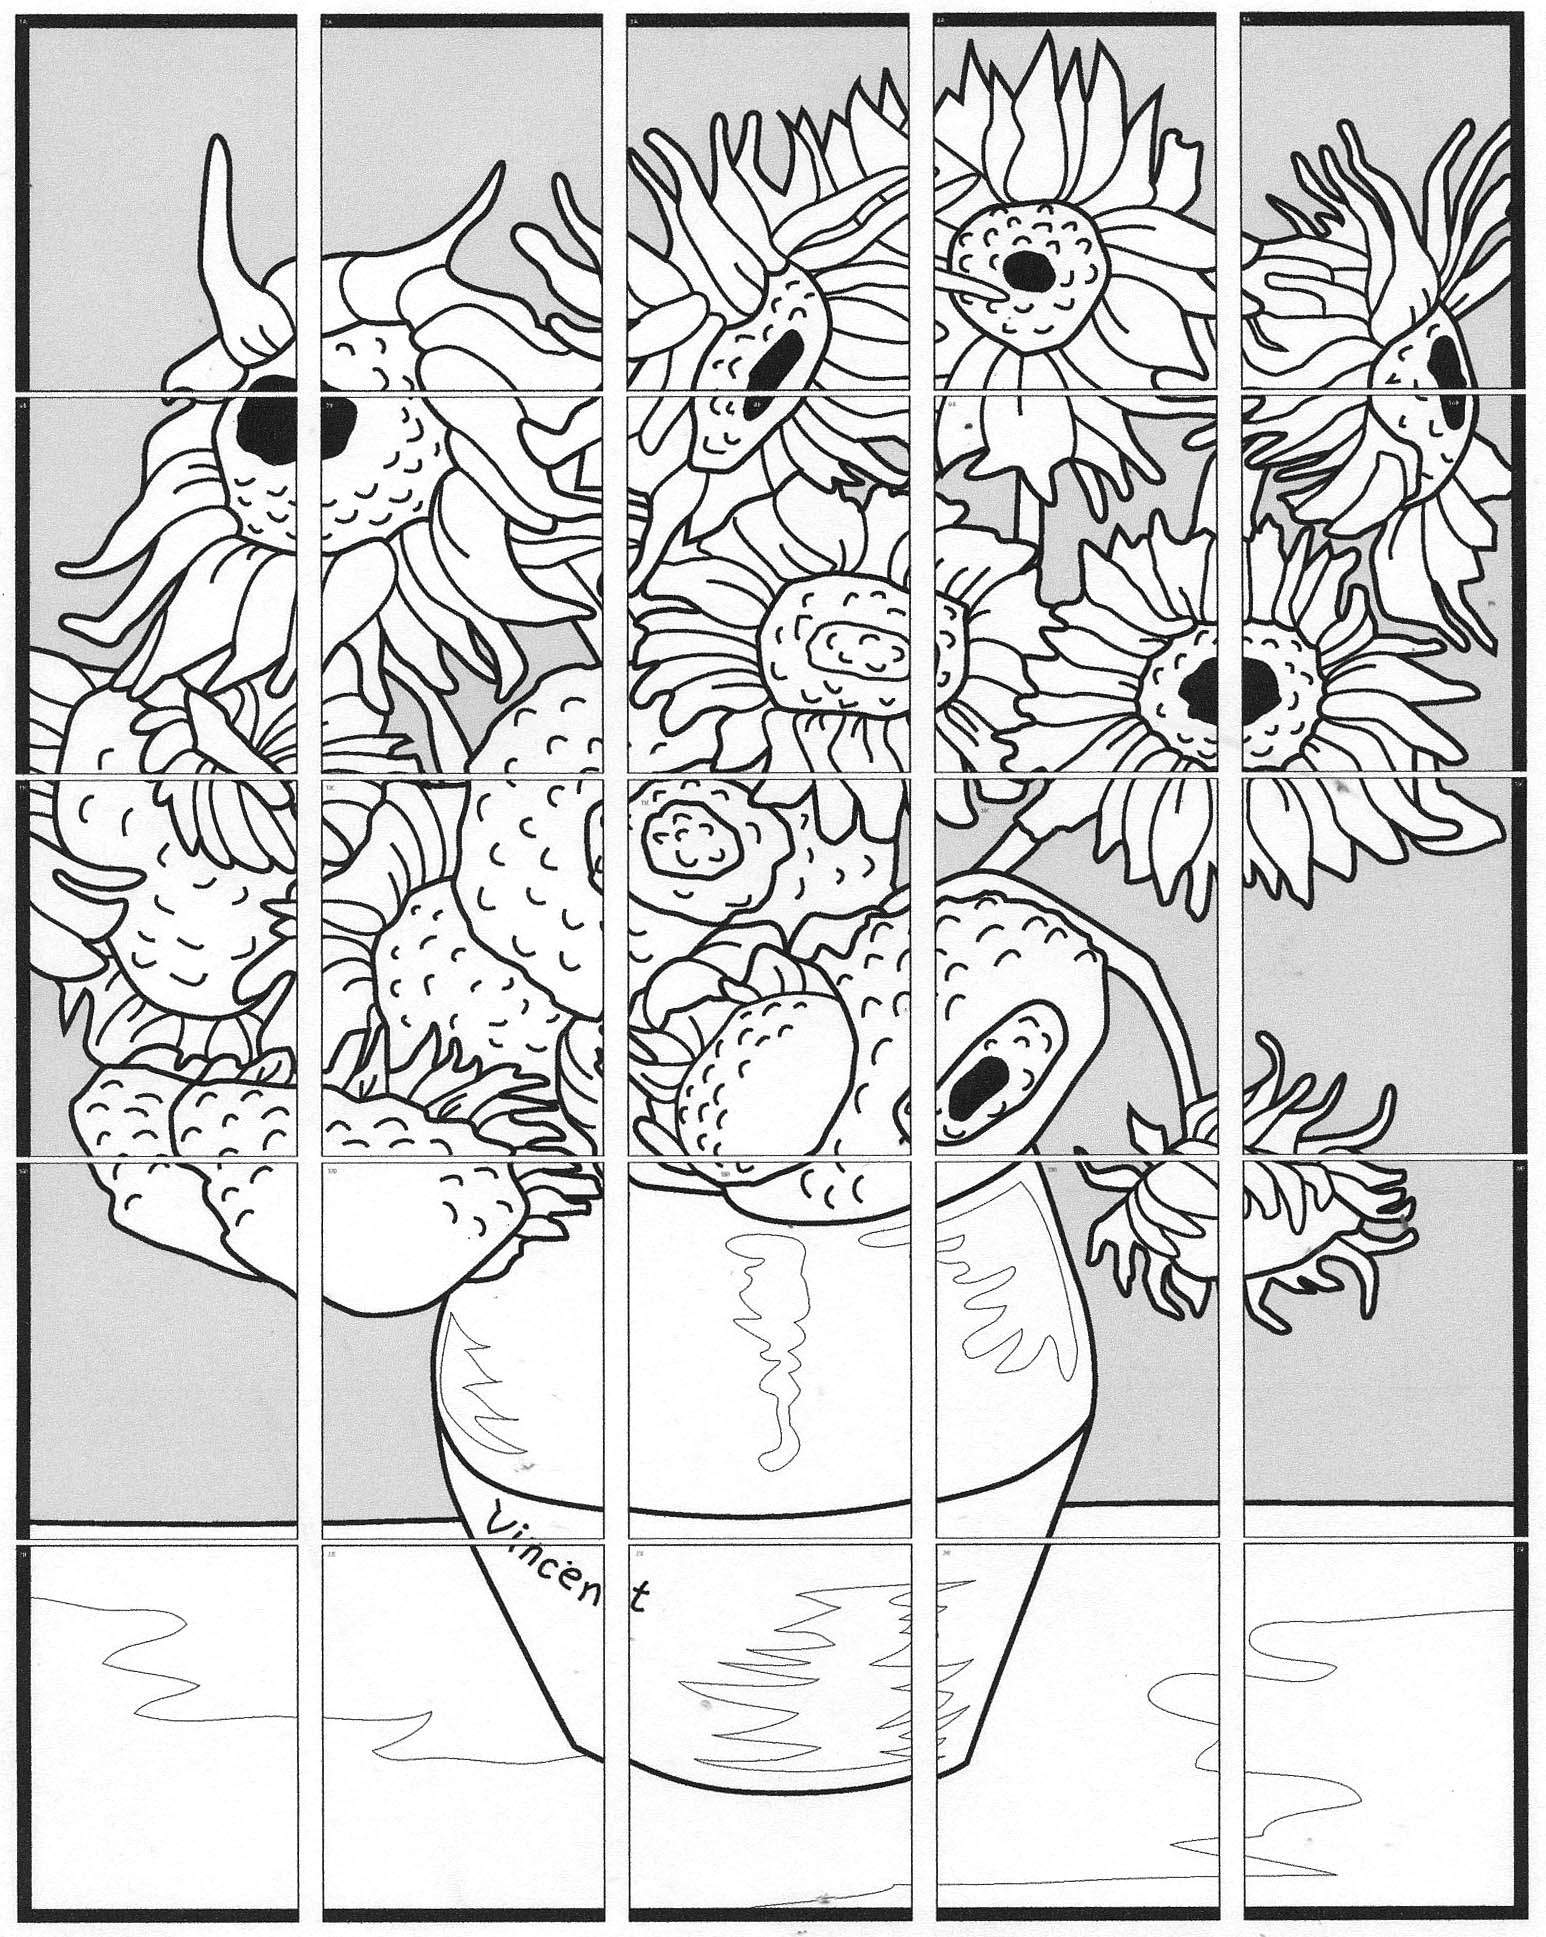 coloring pages van gough - photo#14